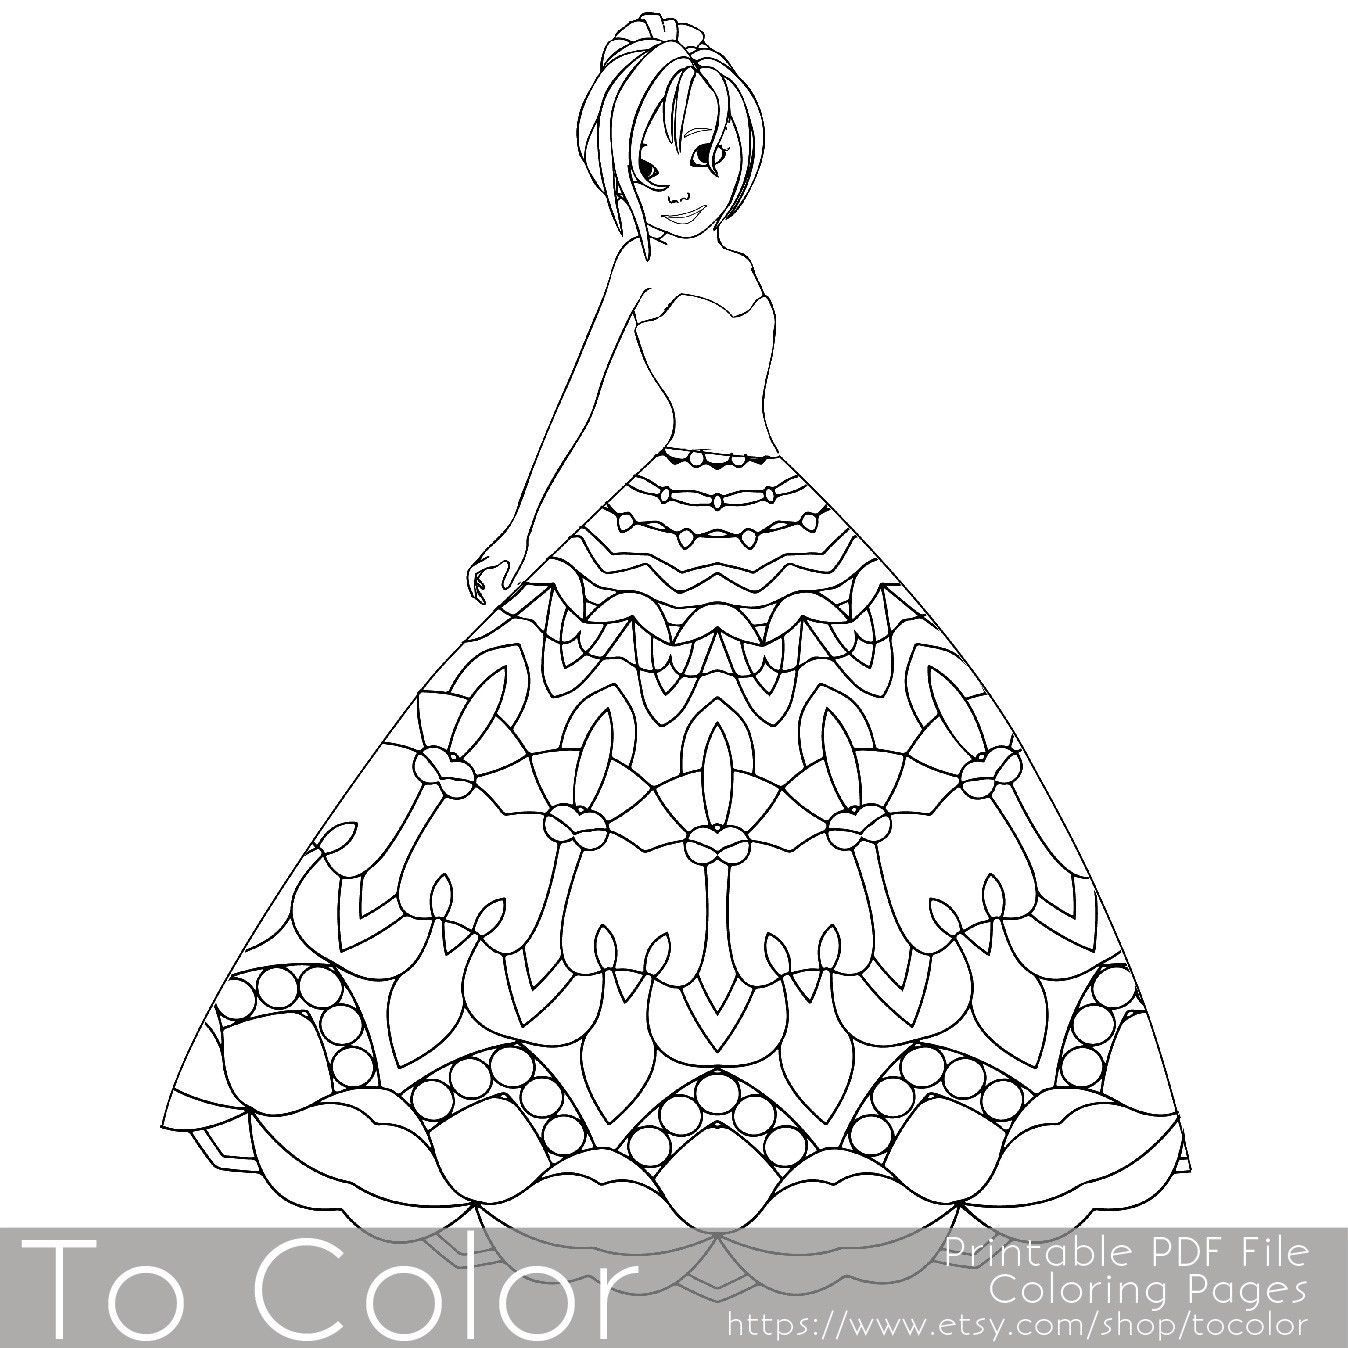 1348x1348 This Printable Coloring Page For Grownups Features A Princess